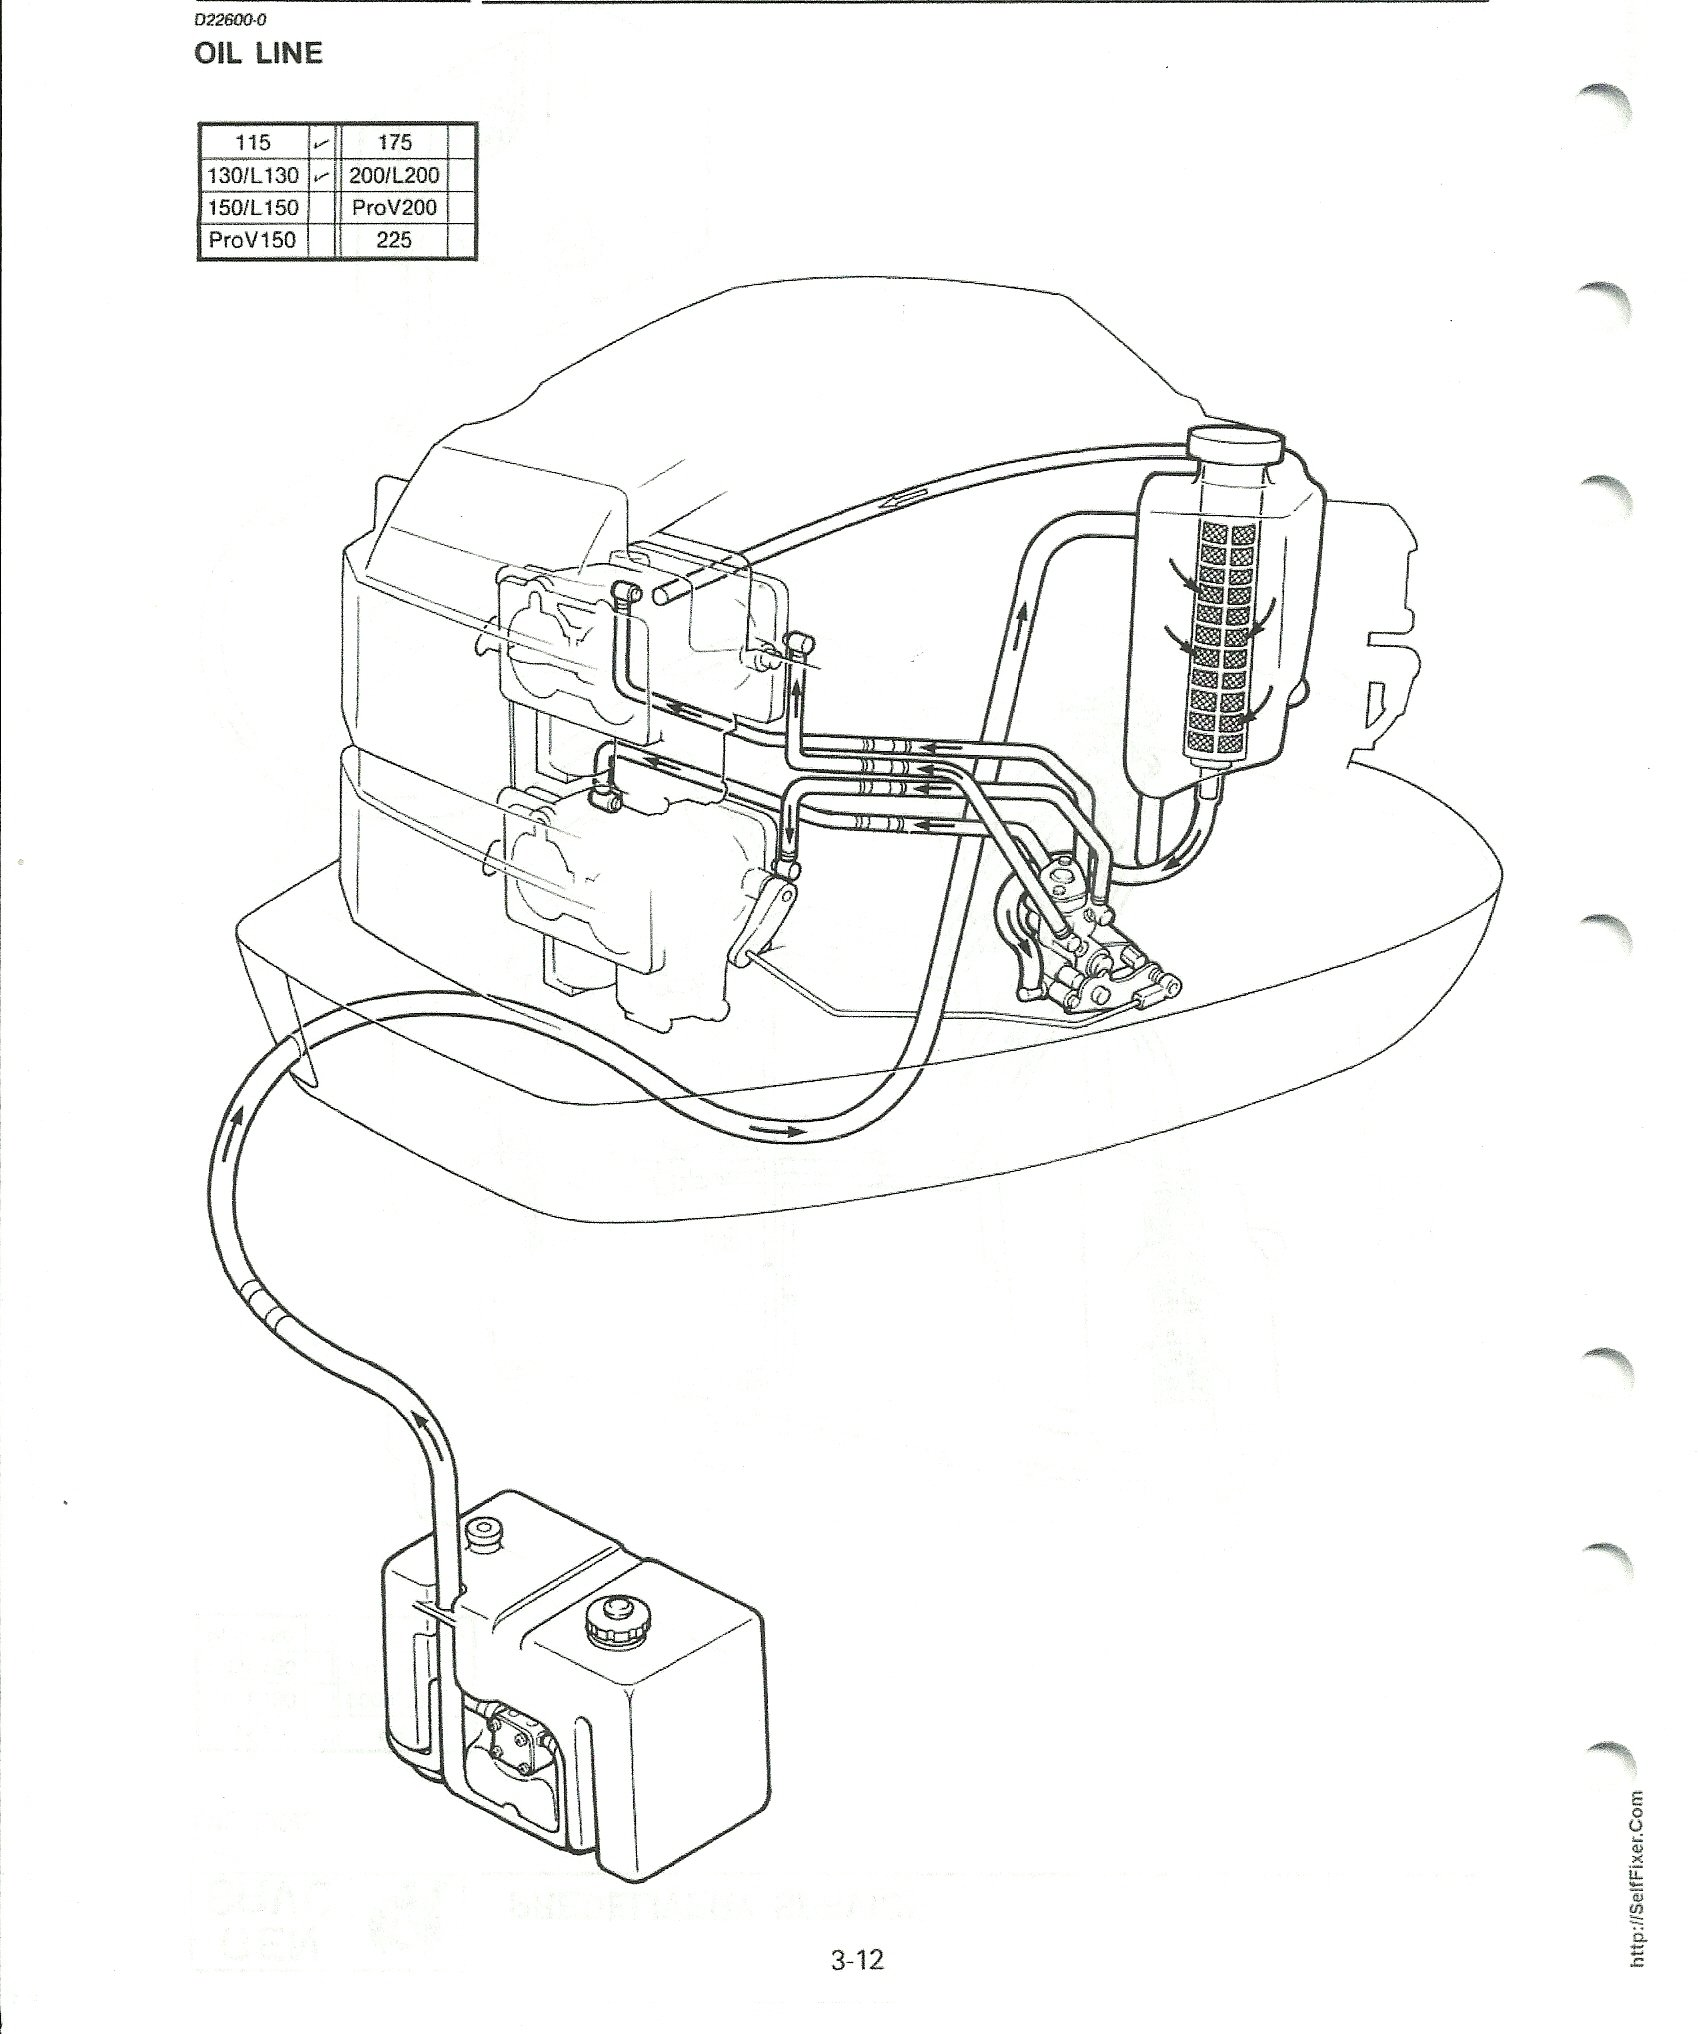 2013 04 10_170509_scan0004 diagrams 739591 yamaha outboard wiring harness diagram yamaha Yamaha 90 Outboard Wiring Diagram at honlapkeszites.co